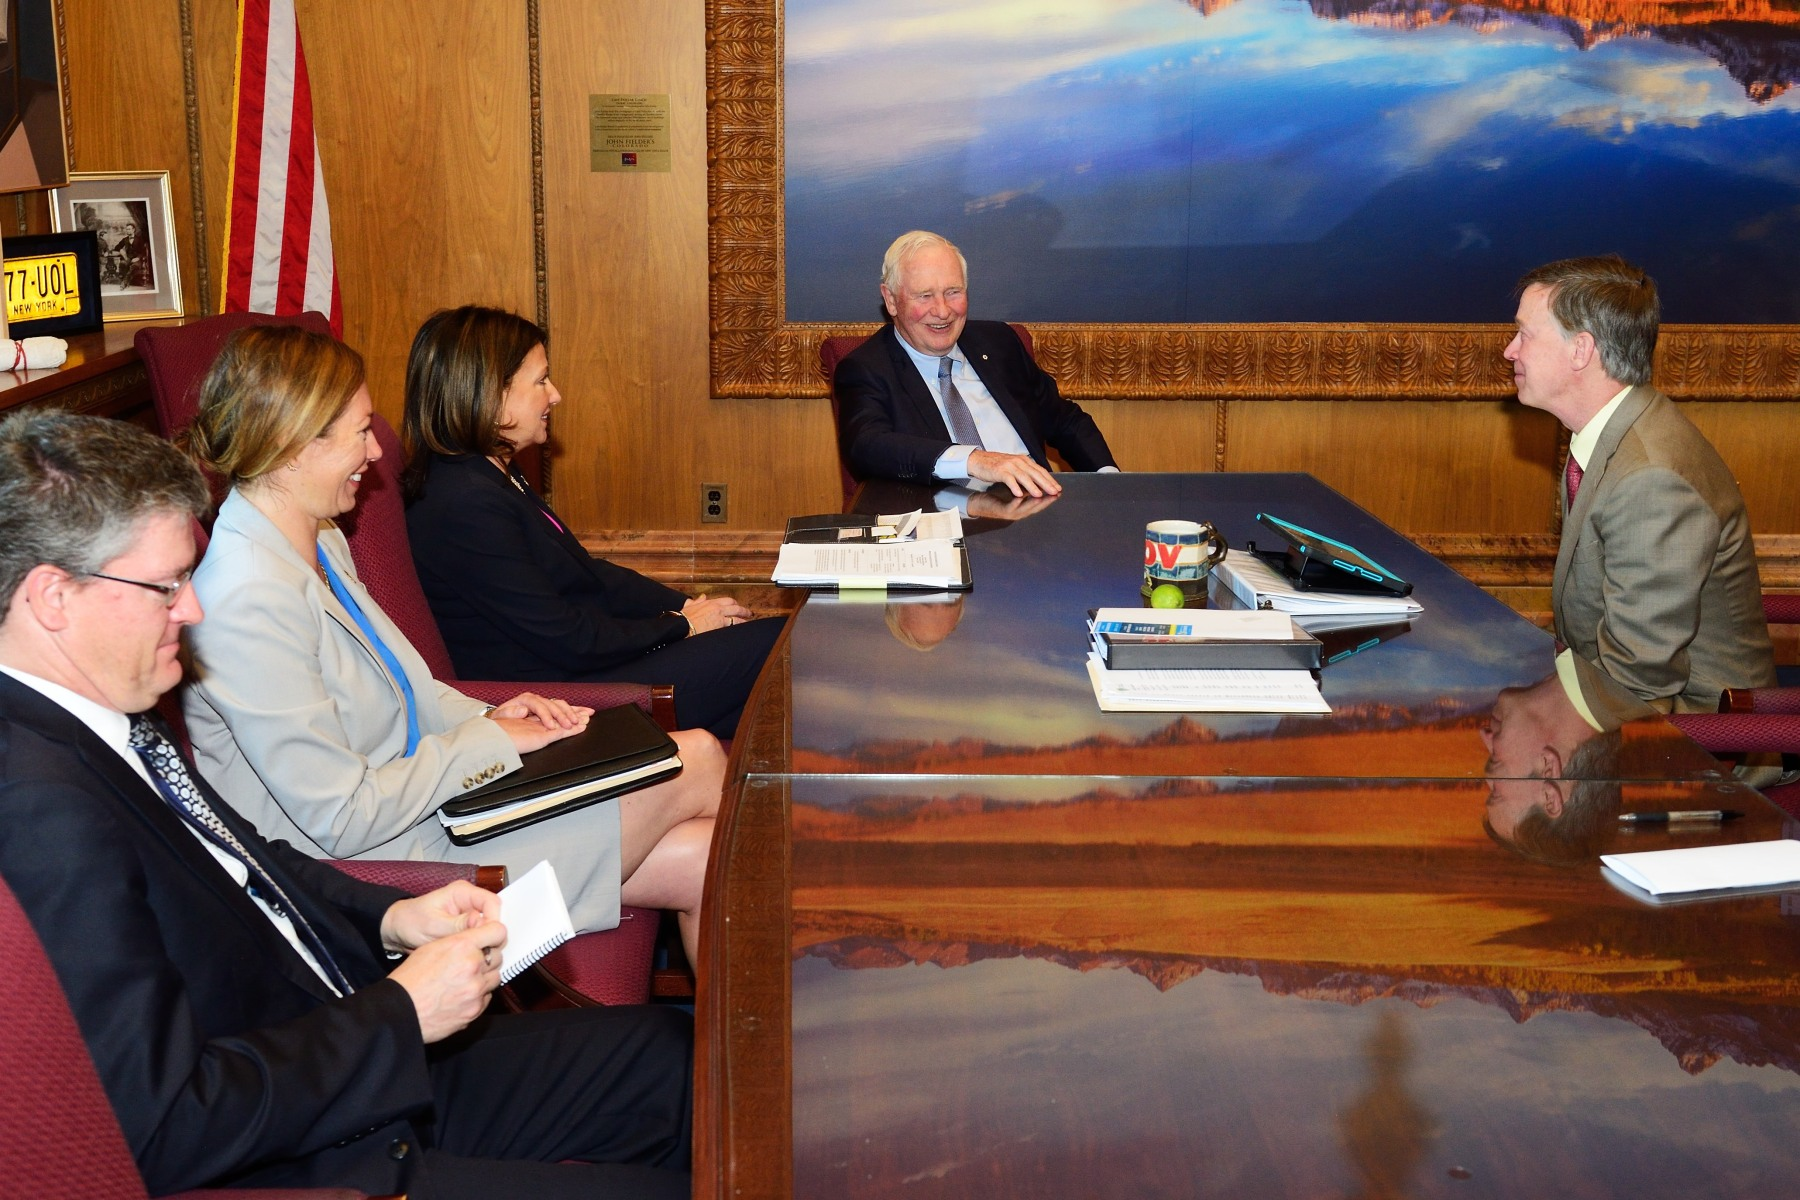 They discussed Canada-Colorado relations and the strengthening of partnerships with Colorado's influencers and decision makers.